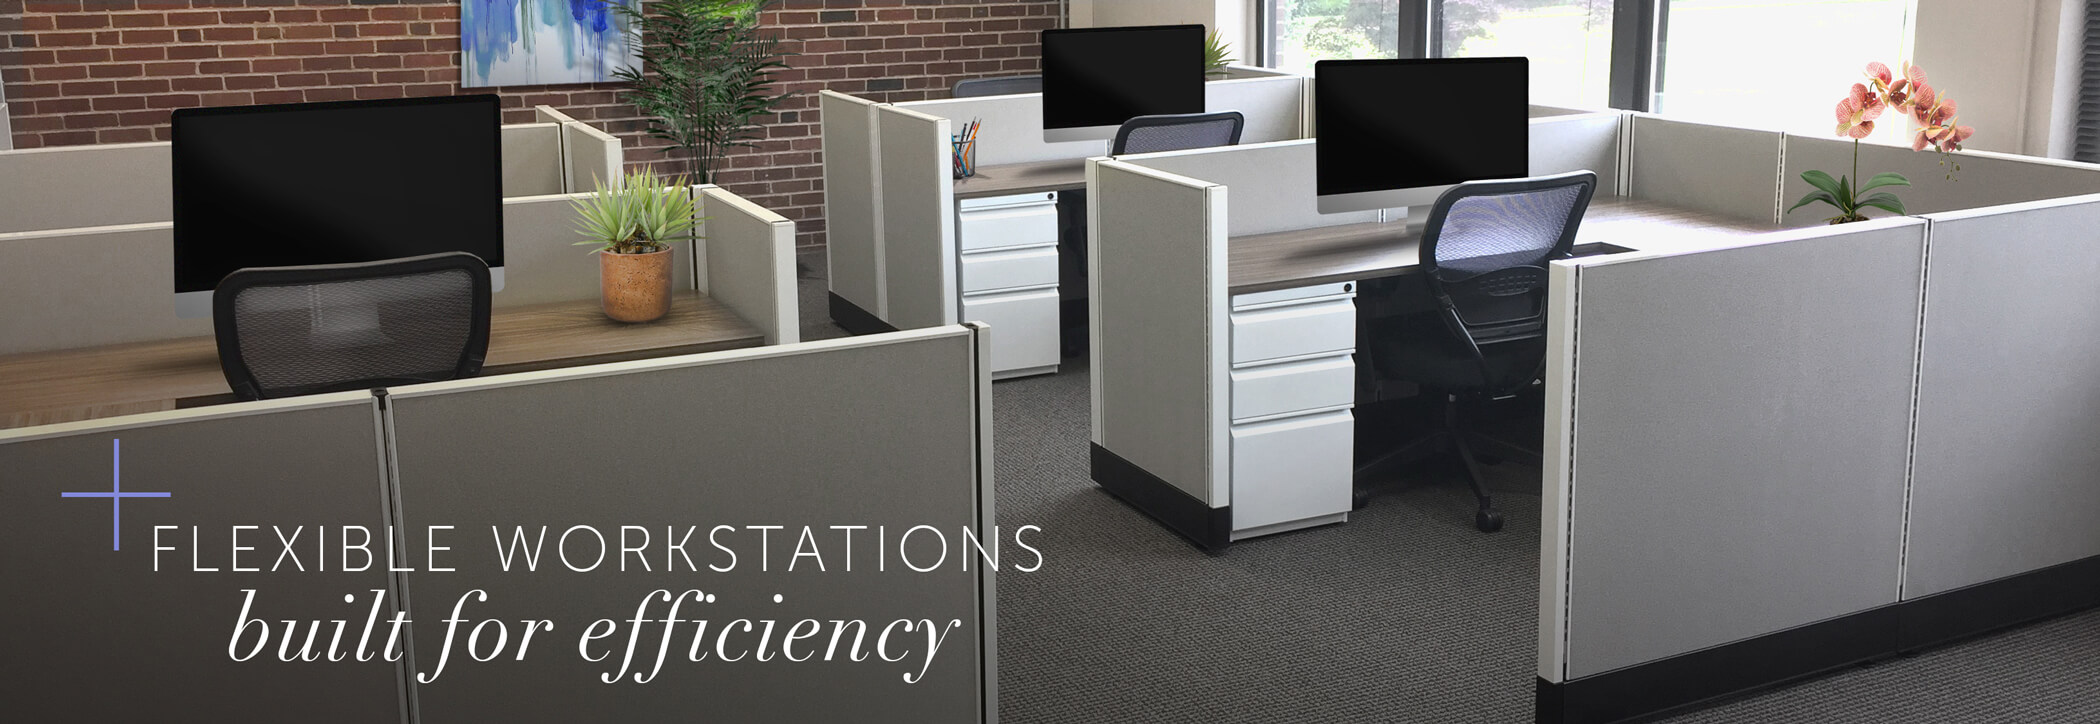 Rented cubicle office space with words 'flexible workstations built for efficiency'